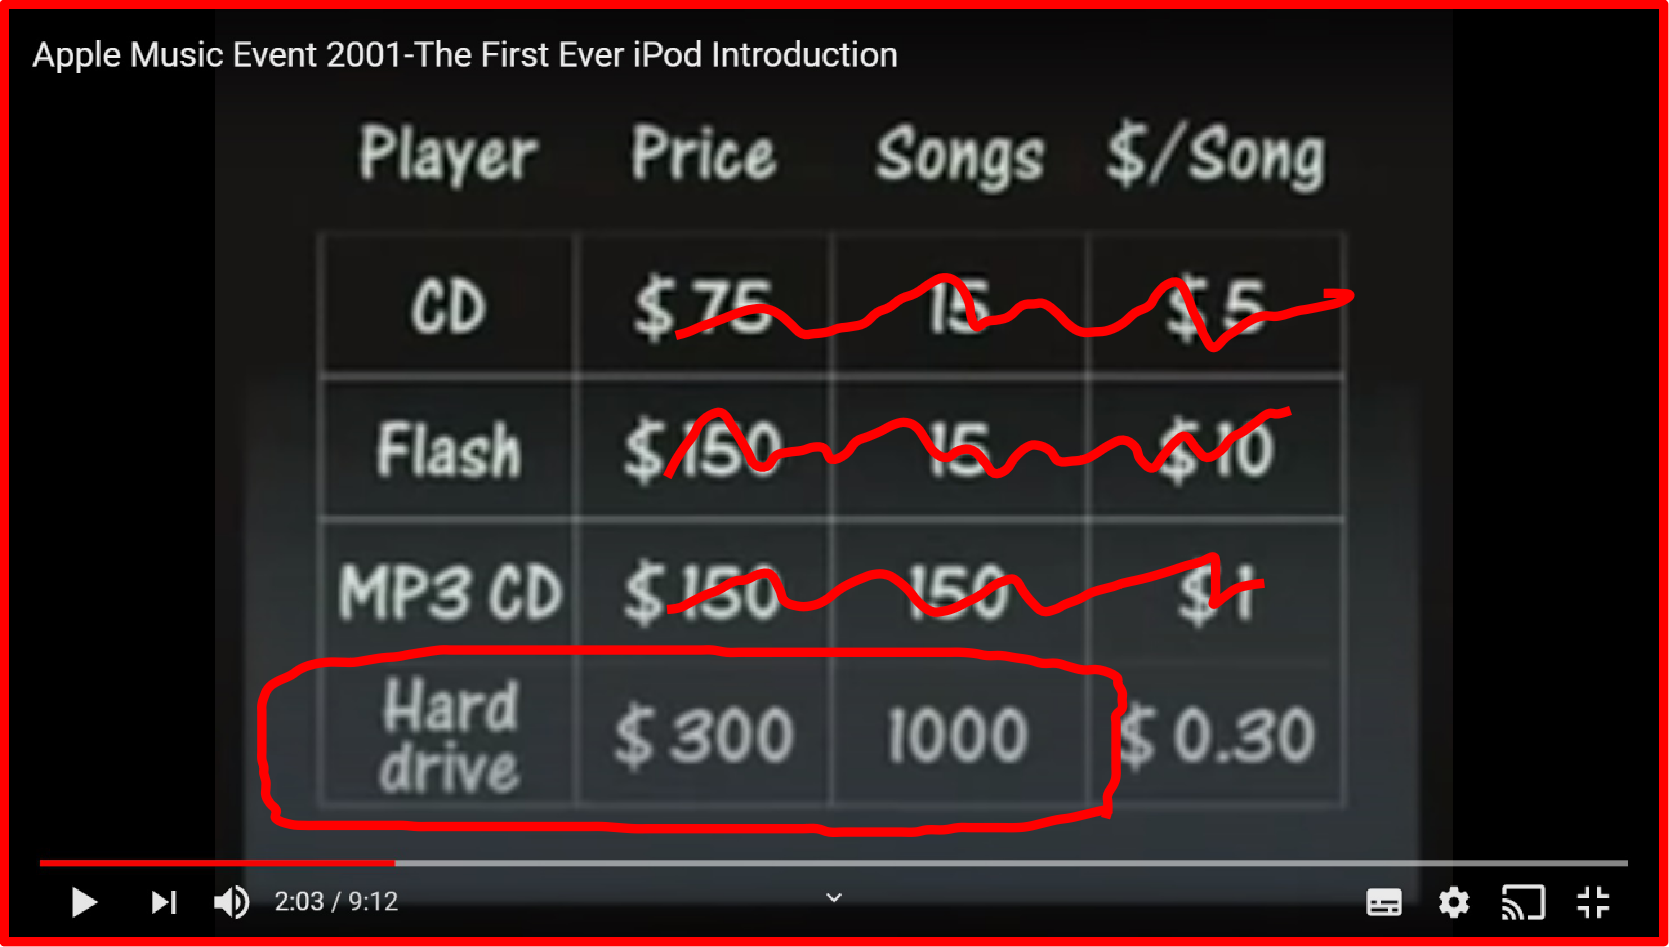 screenshot of price grid showing prices, number of songs, and cost per song highlighting hard drive player